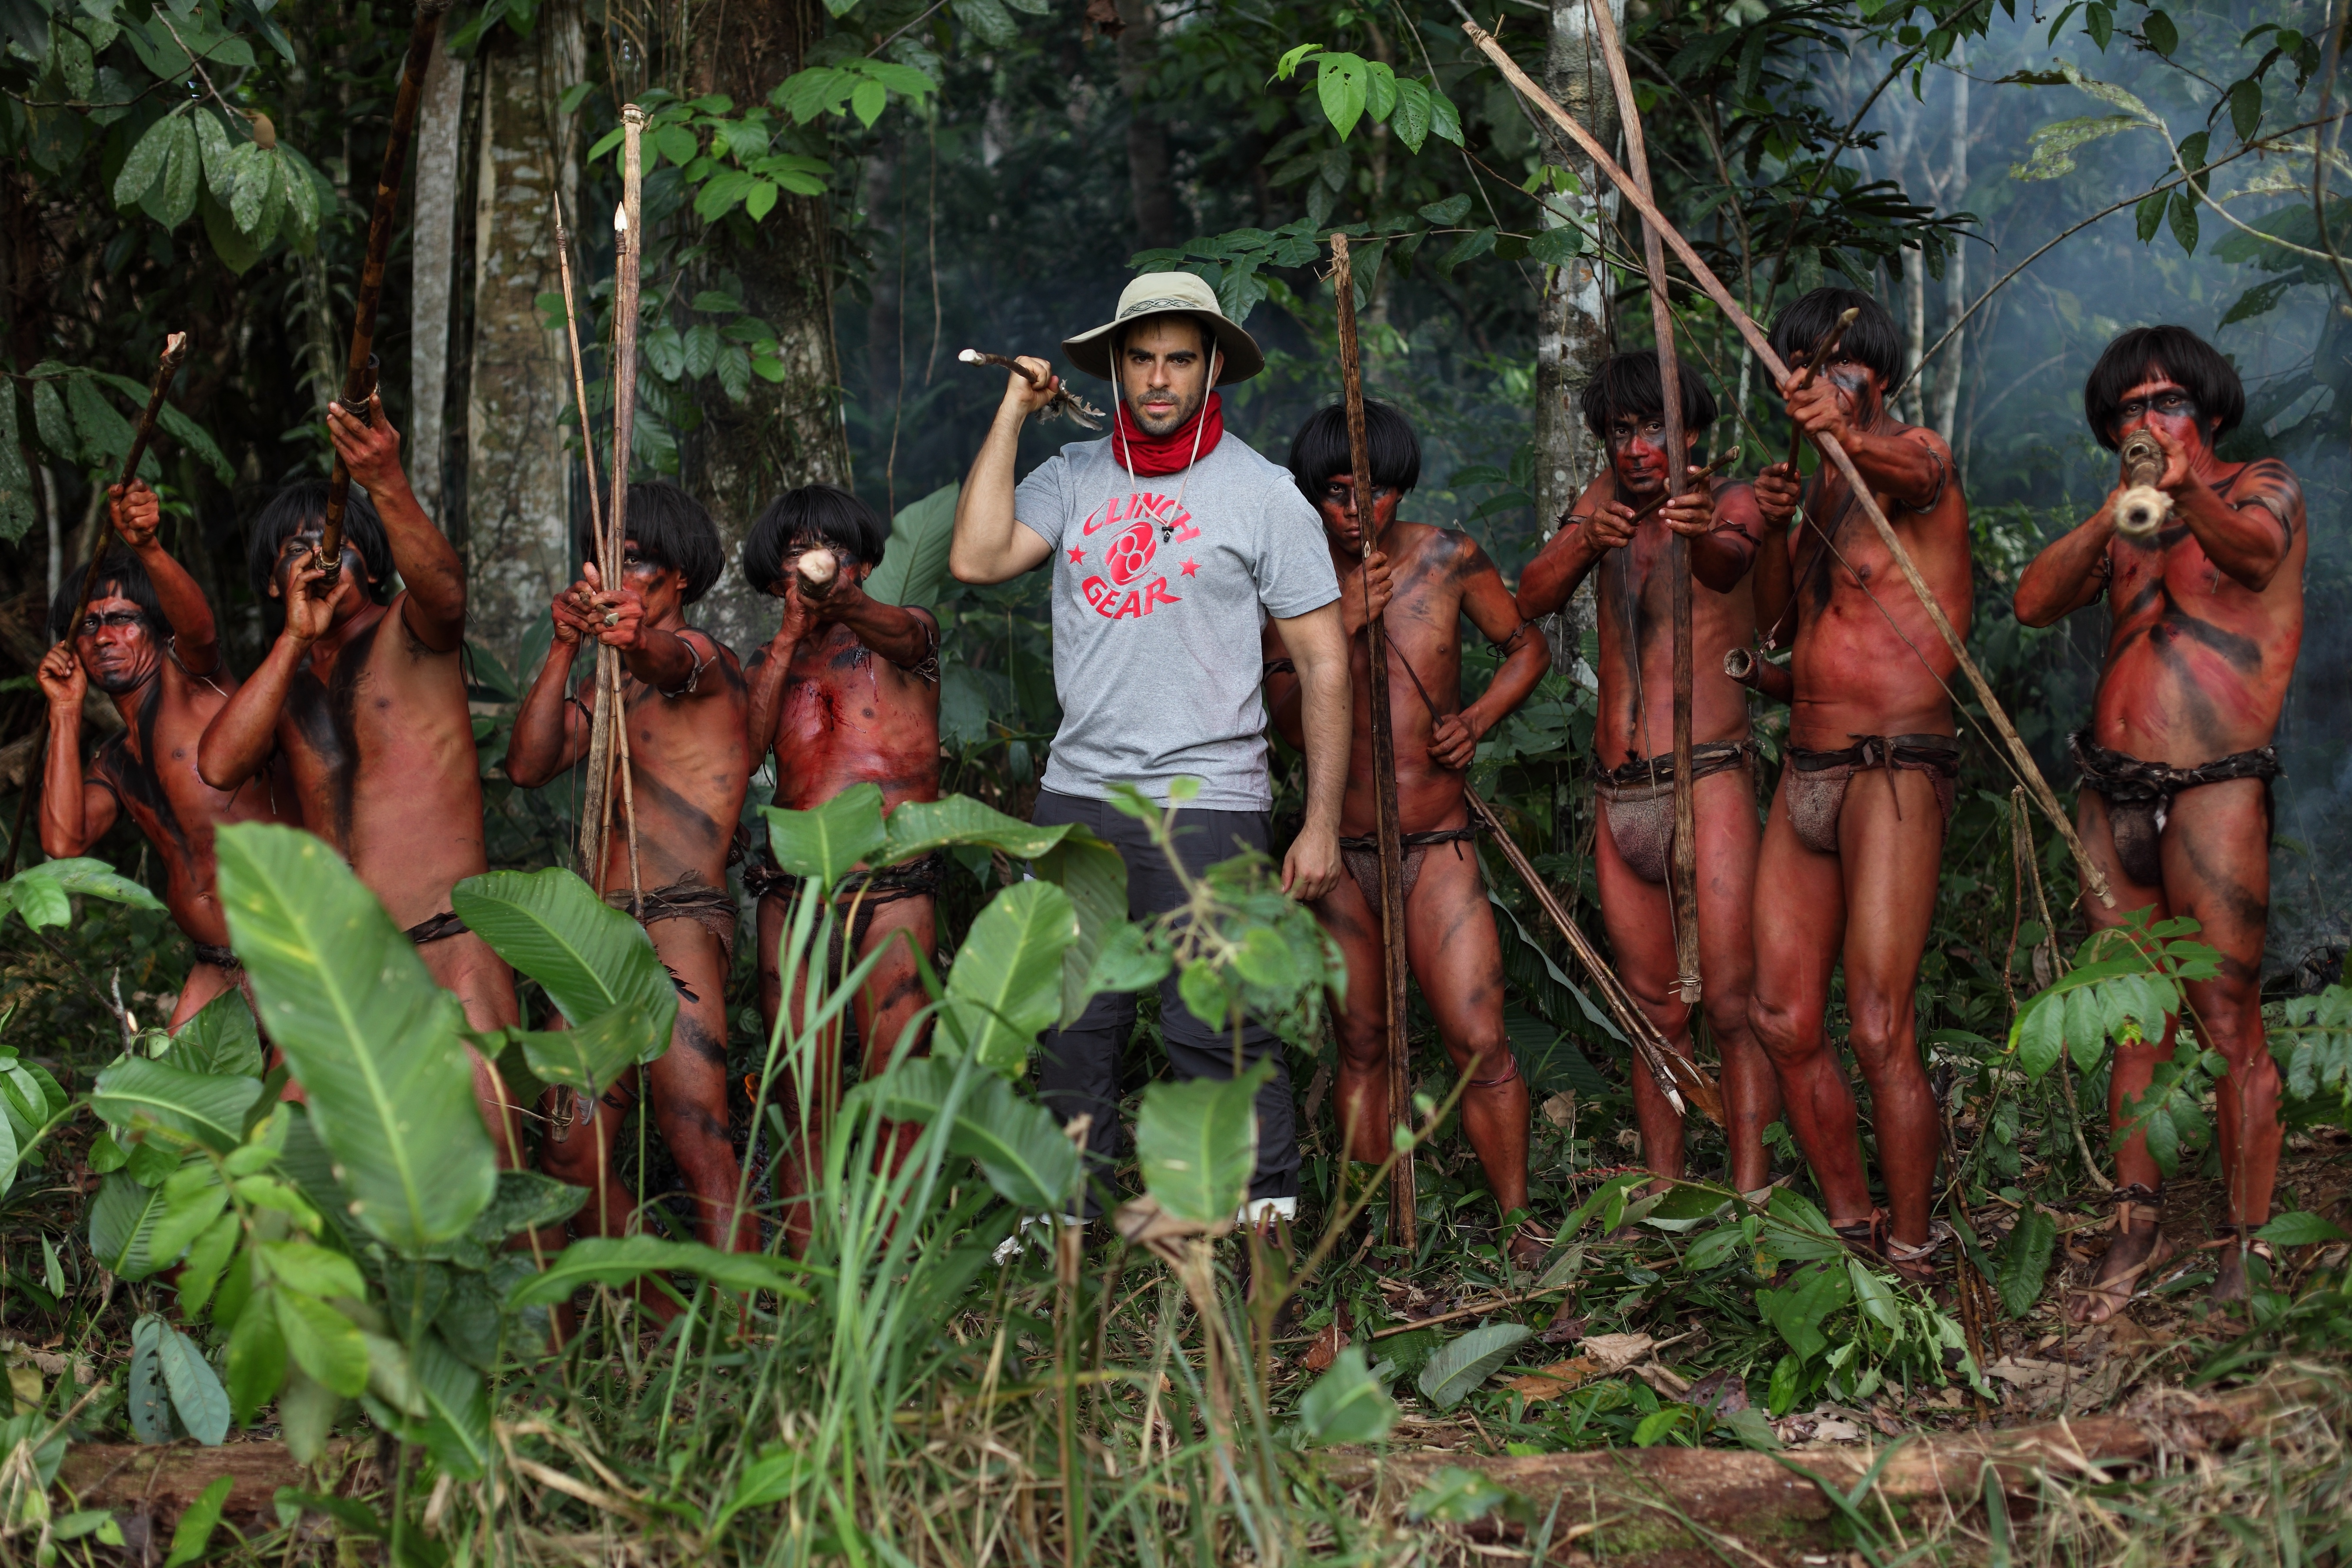 Eli Roth on location in the Amazon filming The Green Inferno. Photo credit, Eduardo Moreno